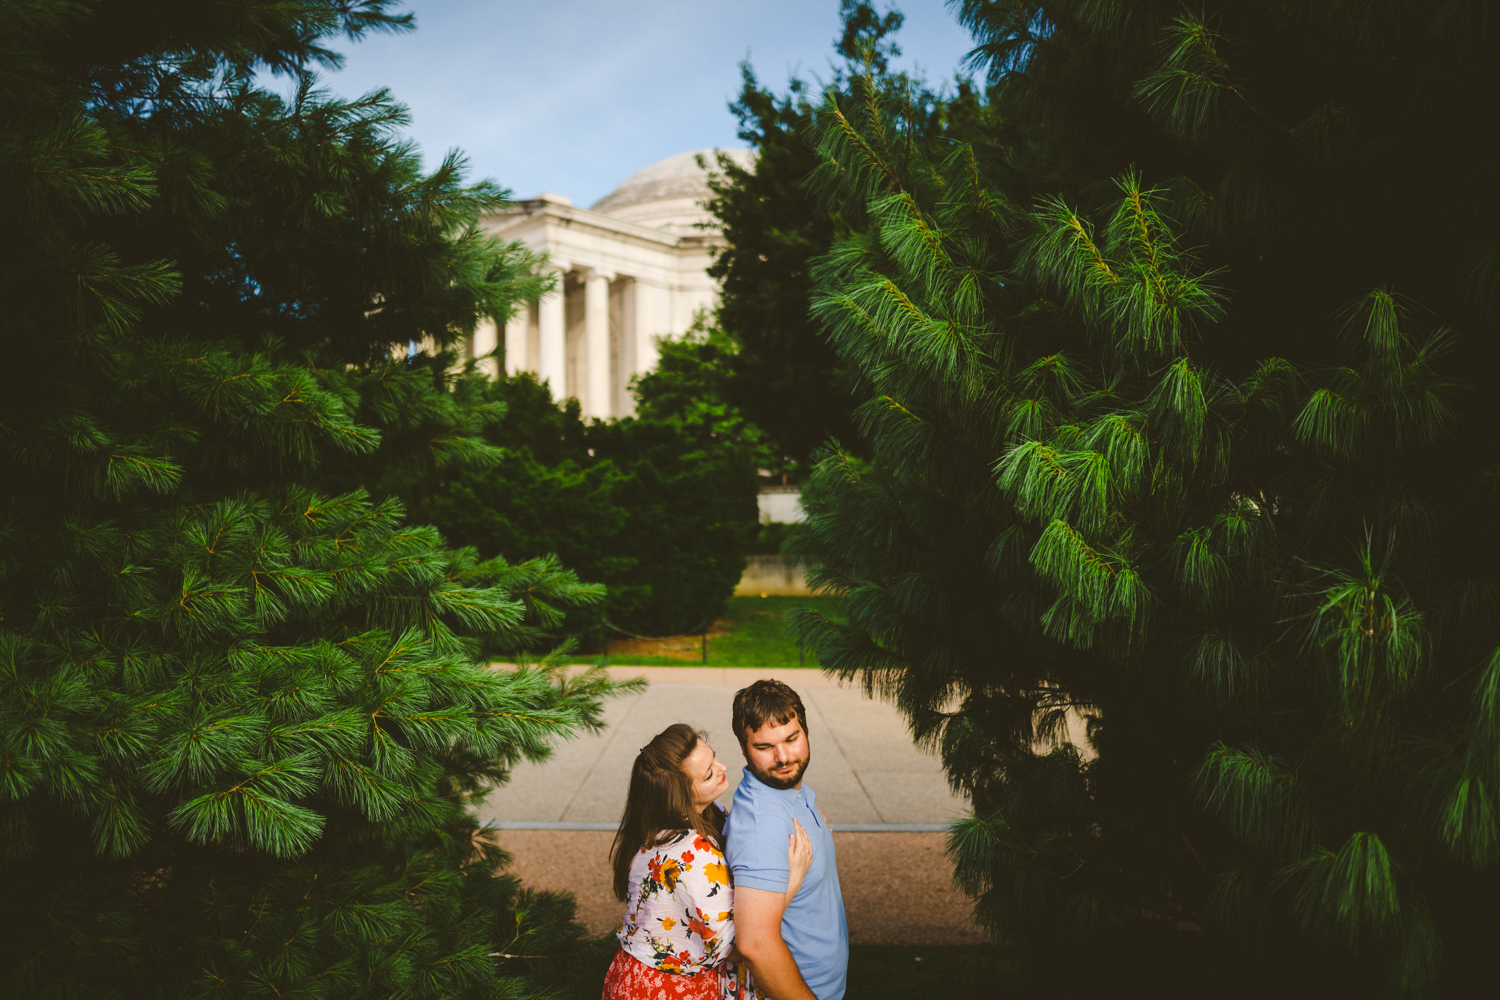 005 - washington dc engagement session jefferson memorial.jpg